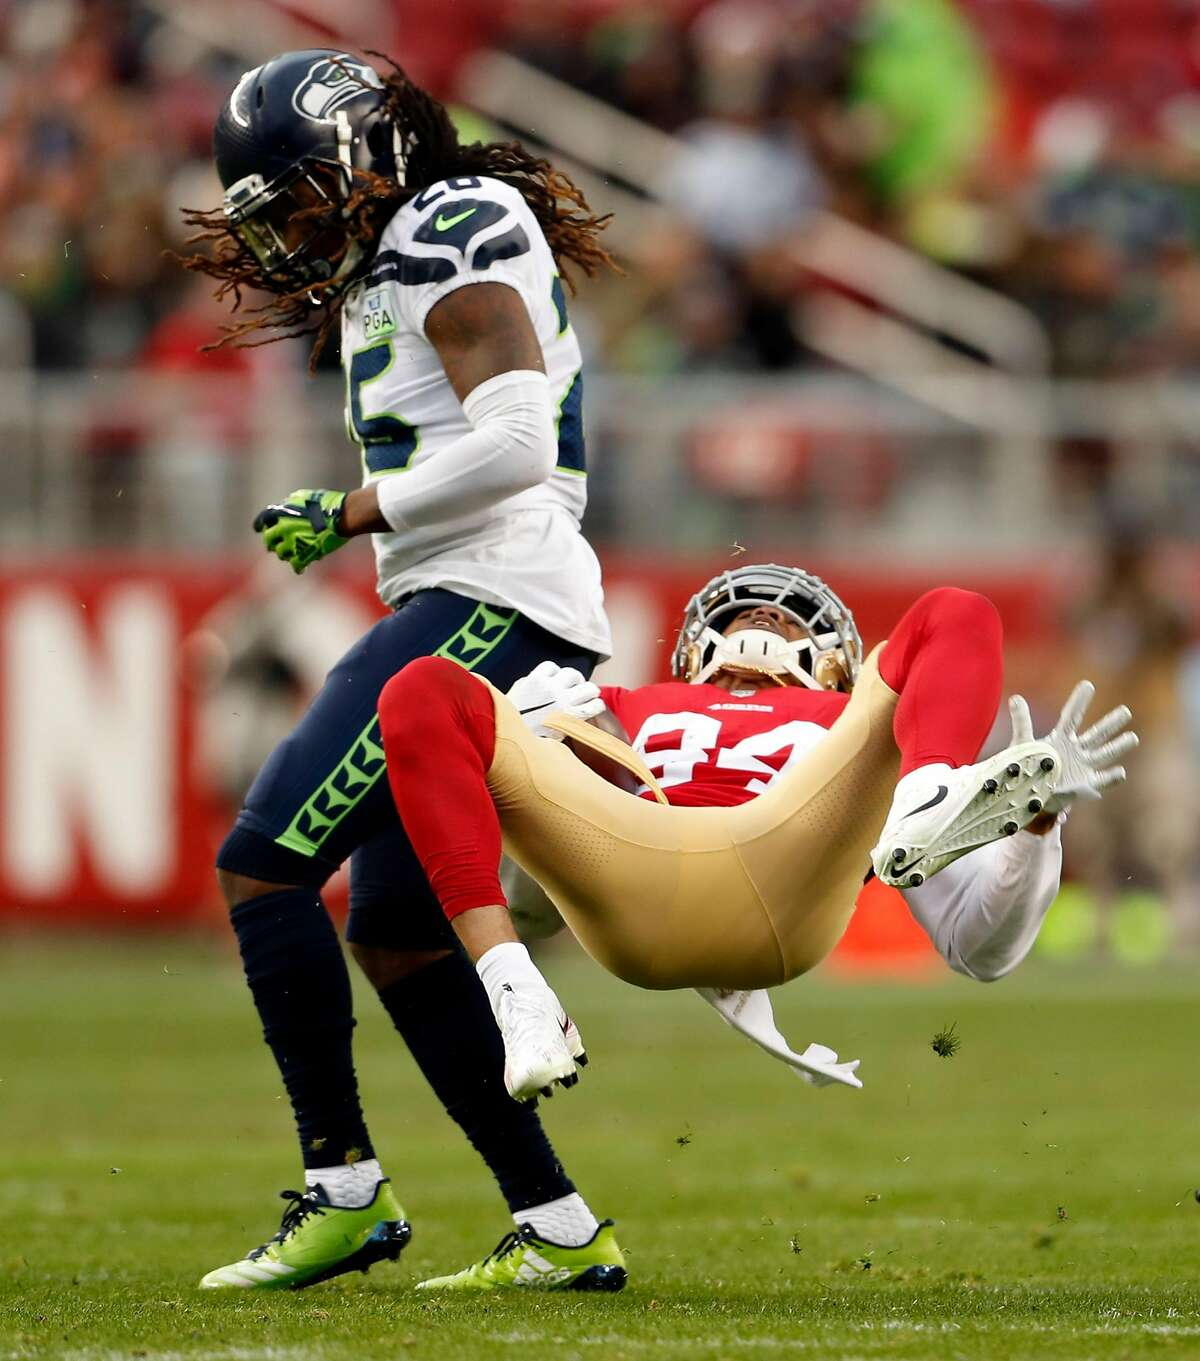 CORNERBACKS GRADE: B- REASONING: Did we get a taste of the Seahawks' cornerback tandem of the future in Shaquill Griffin and Tre Flowers? The youth (and mistakes) showed up at times, but they both made some big-time plays. Flowers was arguably CB1 by the end of the season and may have been Seattle's top rookie. The safety-turned-corner was third on the team with 67 tackles and his three forced fumbles ranked first out of all rookie defensive backs. Griffin had his struggles late in the season; a couple blown coverages immediately come to mind. But he's filled the big question mark at left CB (Richard Sherman's old position) and has plenty of room to grow heading into his third NFL season. At his end-of-season news conference last week, head coach Pete Carroll said Griffin was